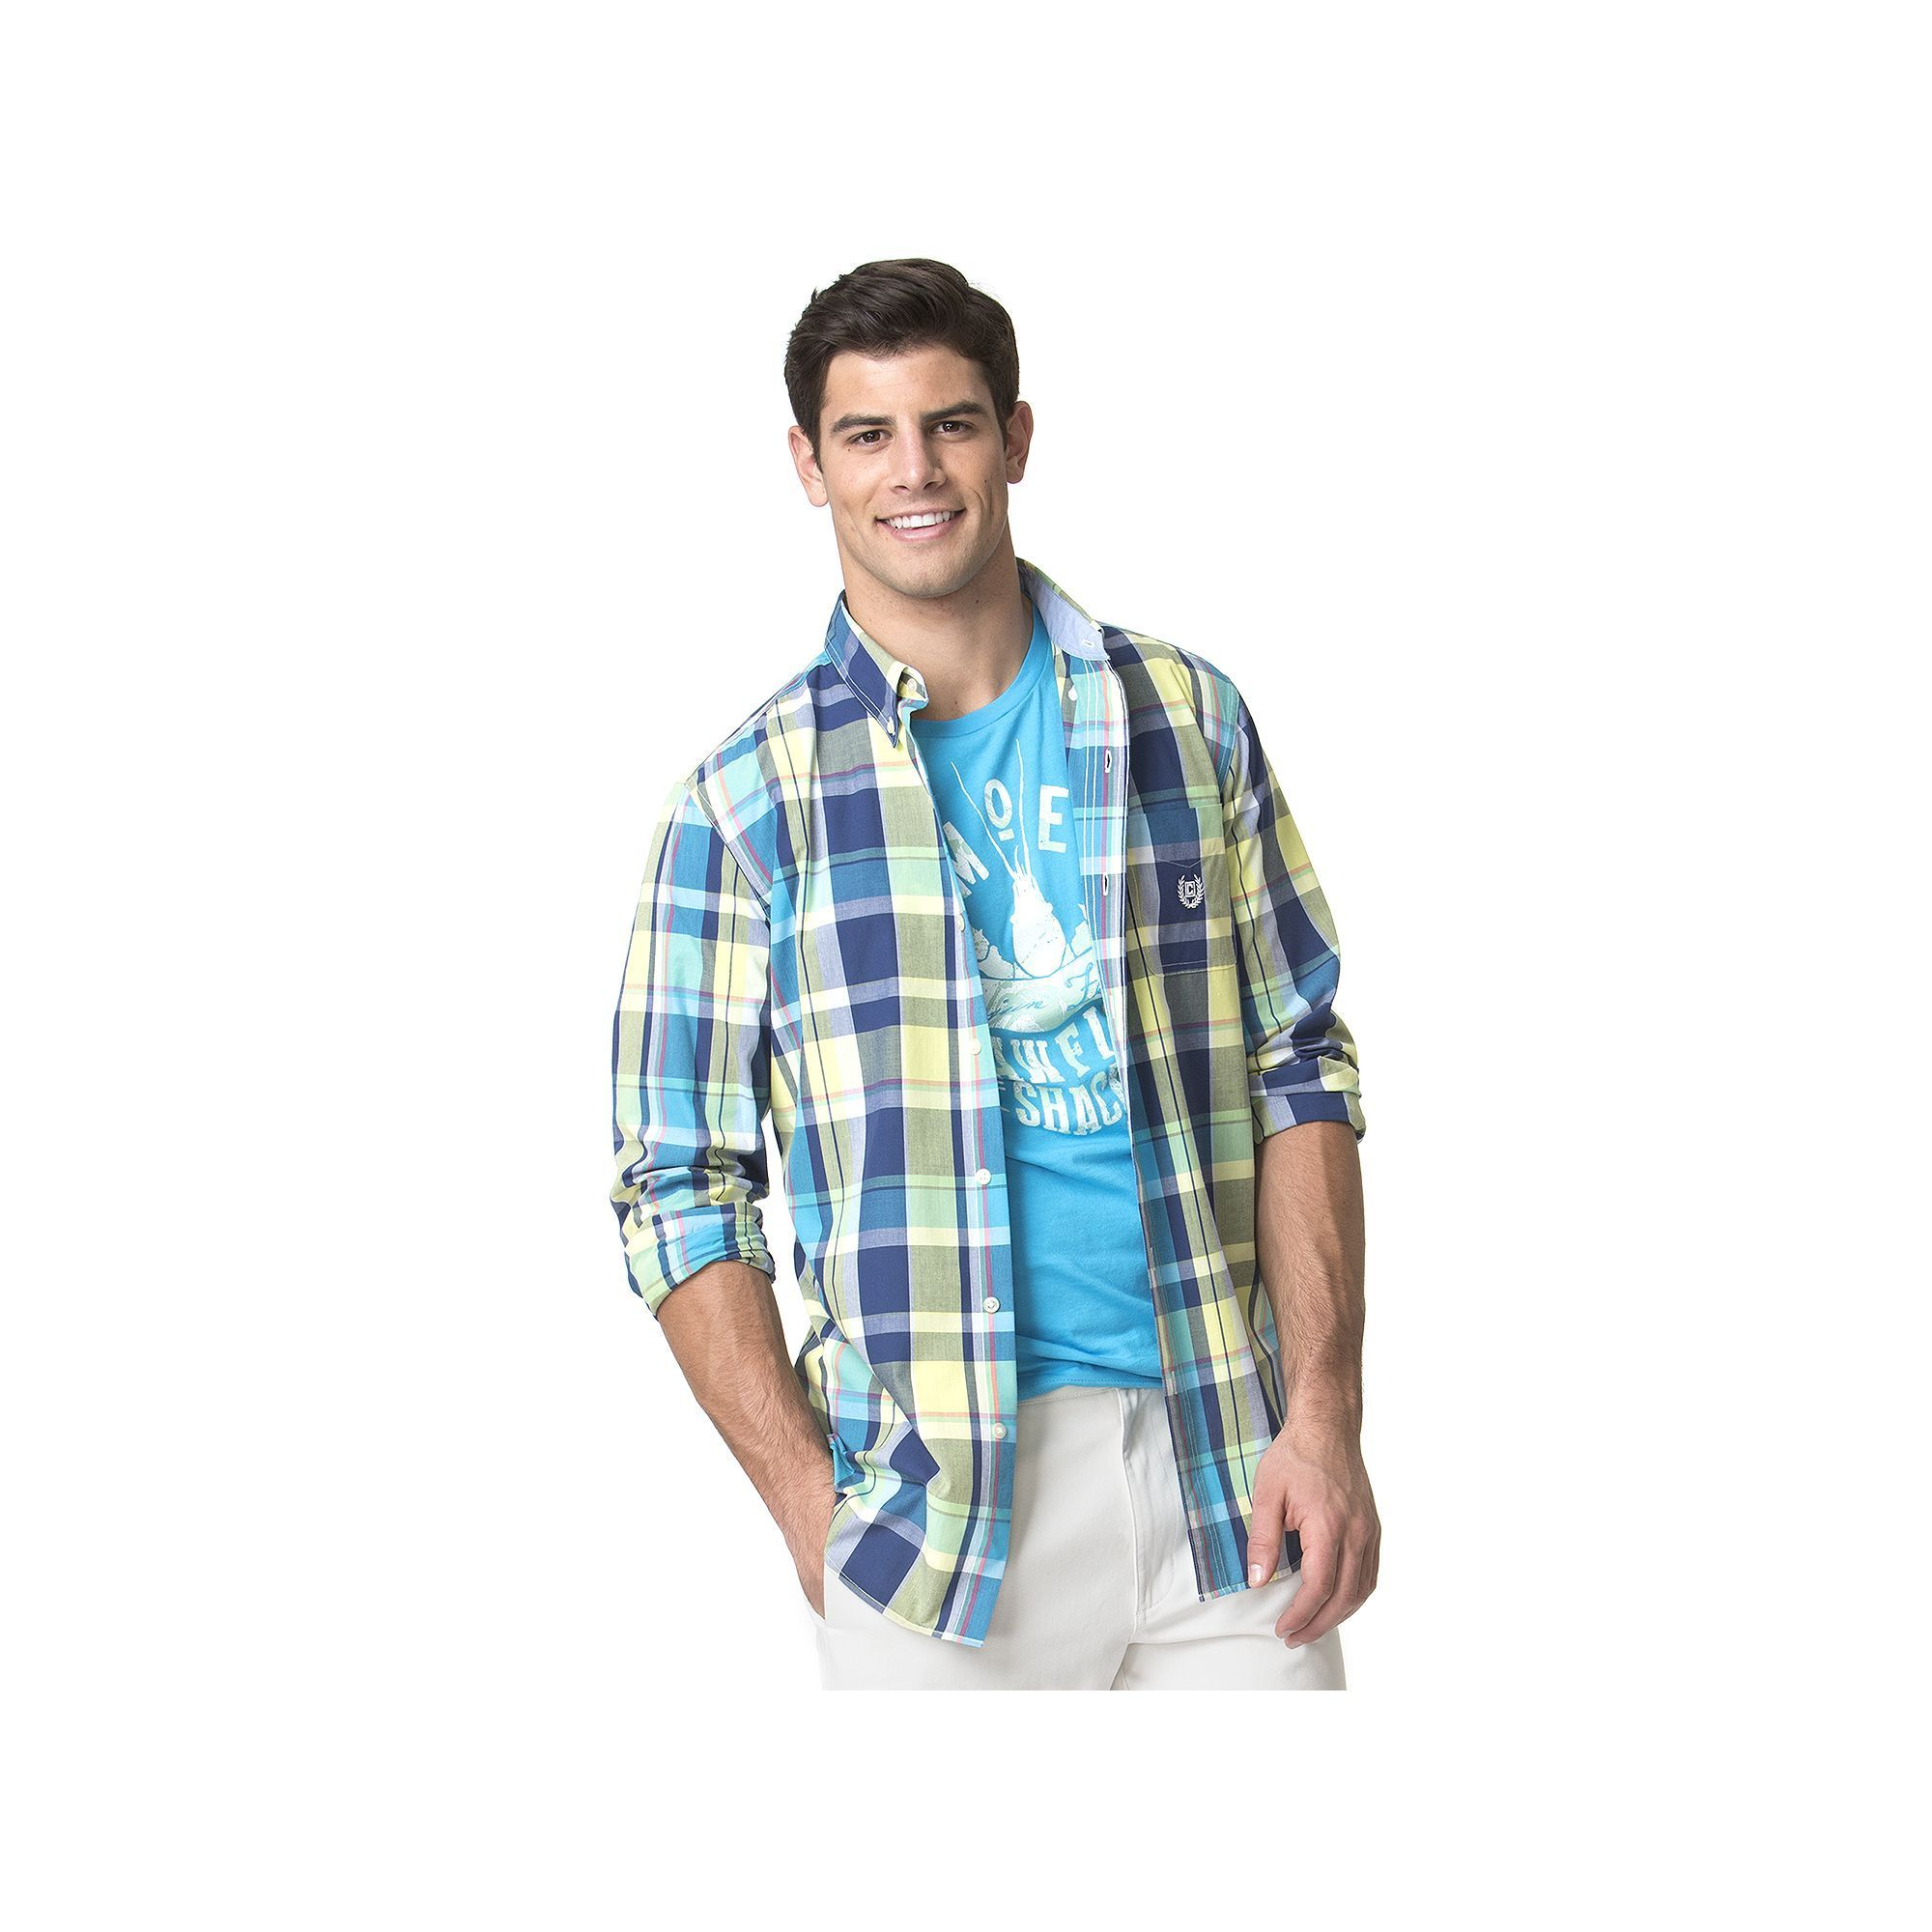 Flannel shirts at kohl's  Menus Chaps ClassicFit Plaid EasyCare ButtonDown Shirt Yellow